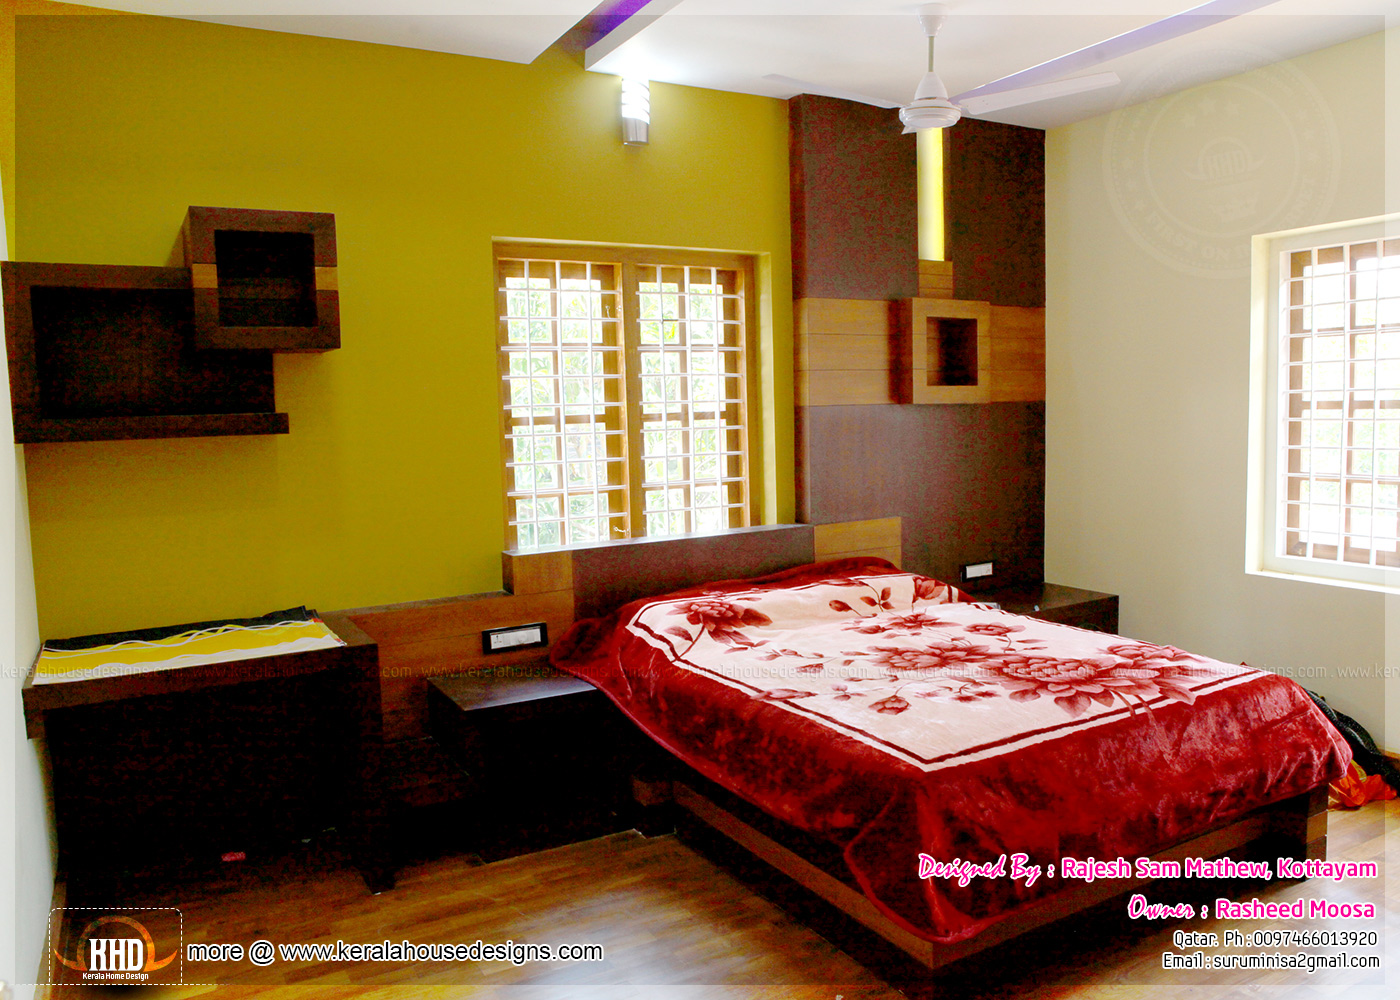 Kerala interior design with photos kerala home design for Interior designs for bedrooms indian style